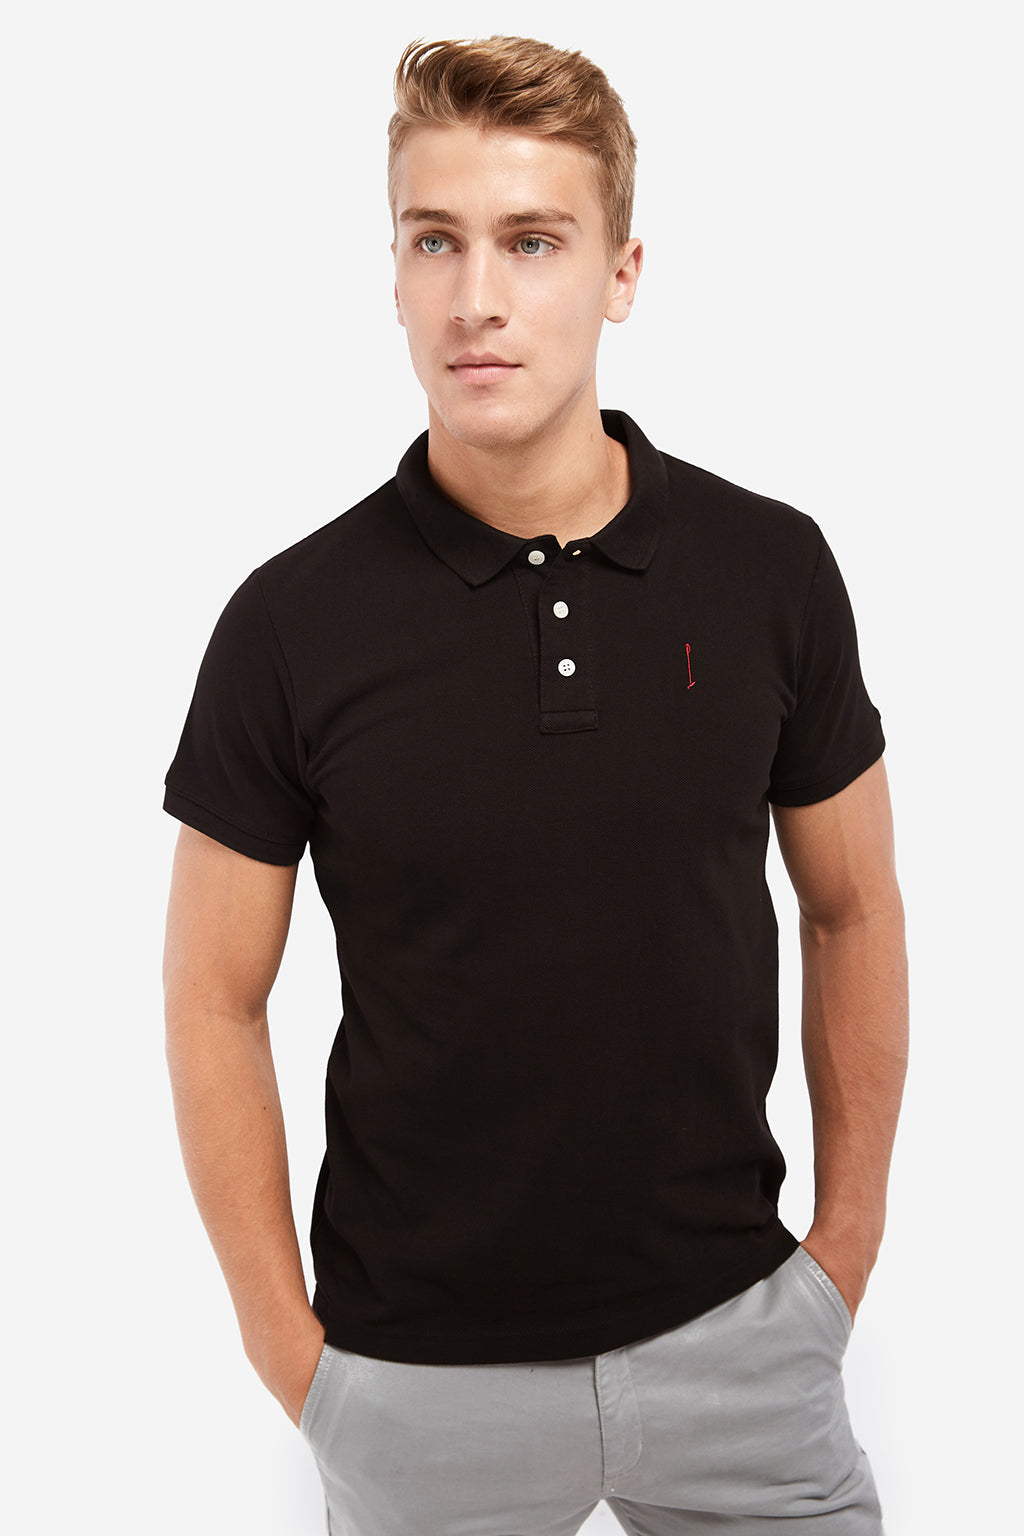 Black Knot polo shirt